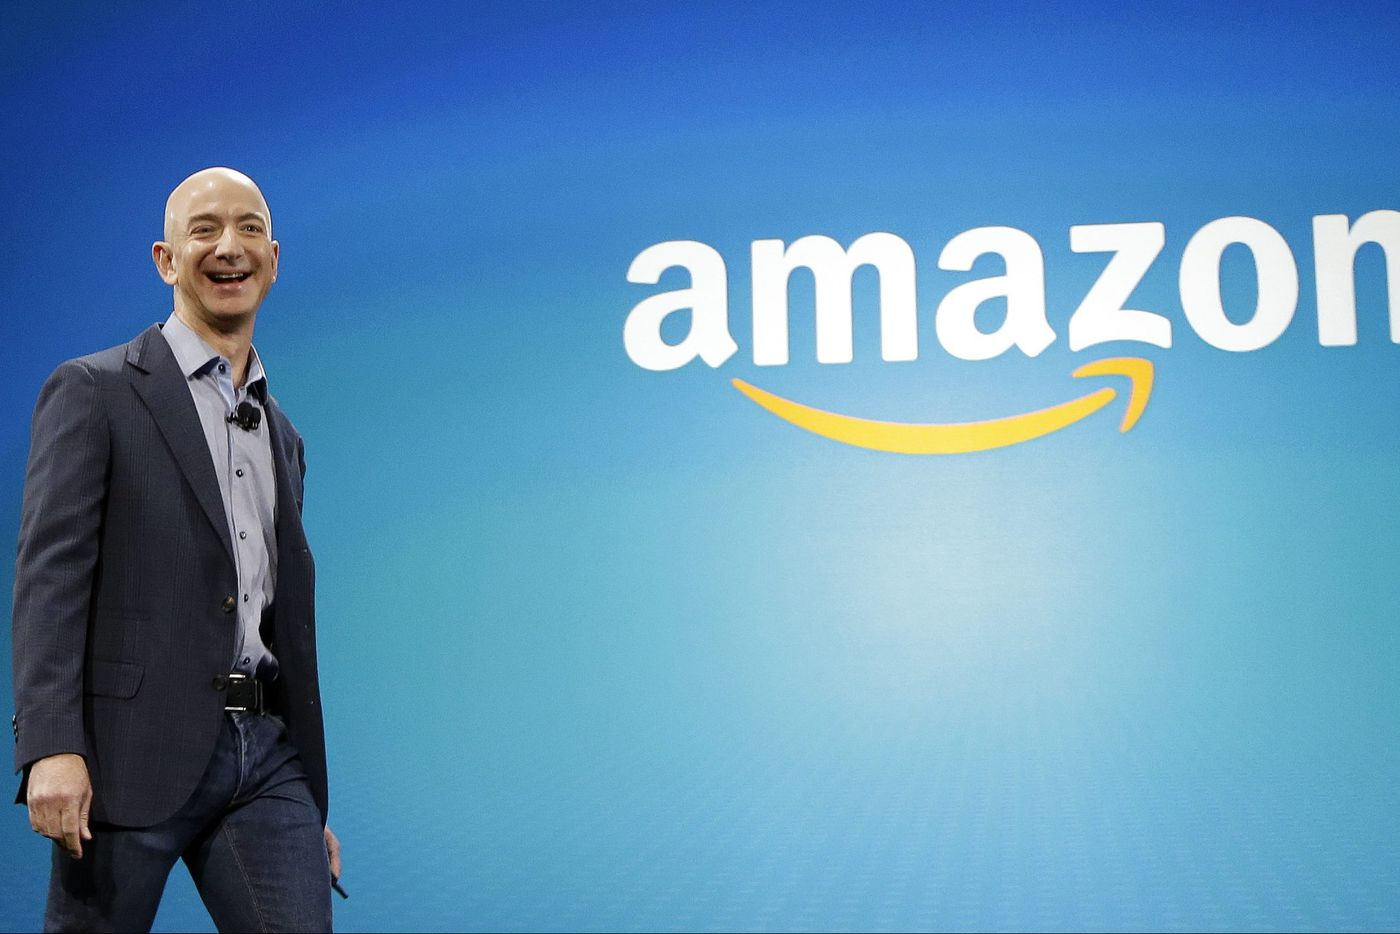 Amazon's Jeff Bezos commits $2.7 billion to help homeless, pre-schools